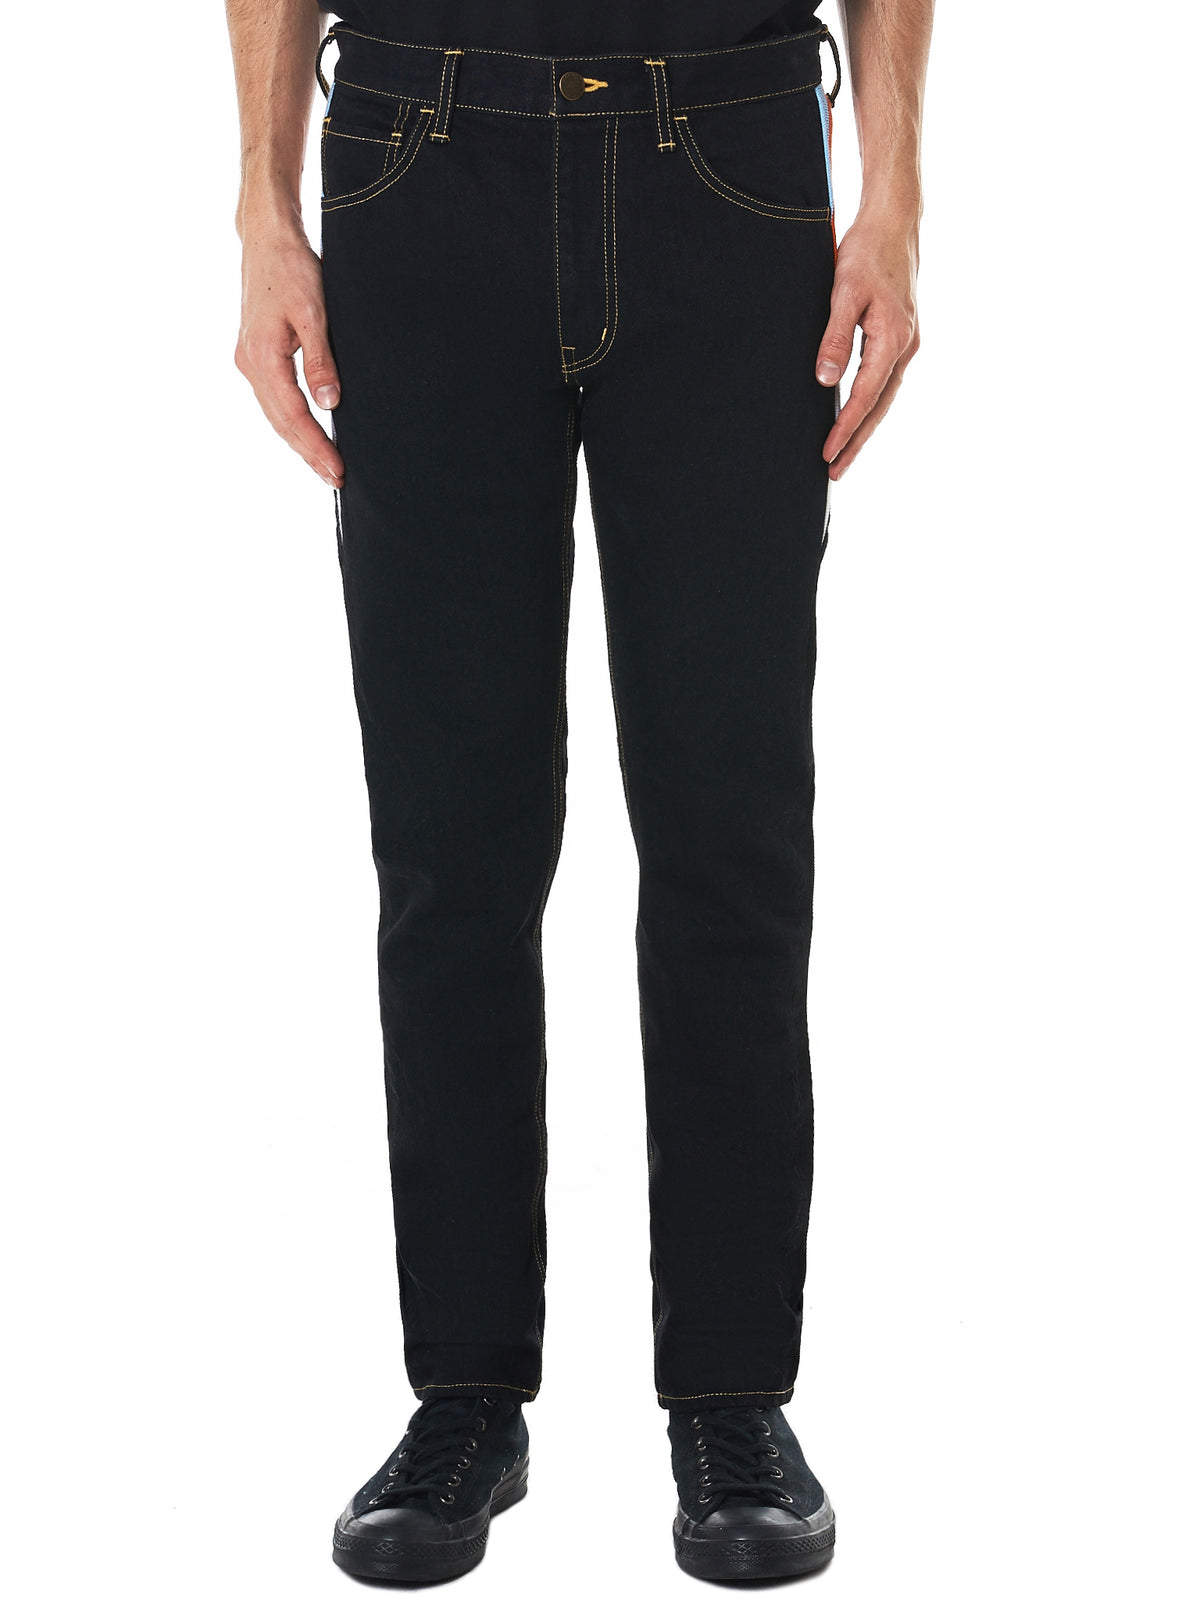 Ribbed Panel Denim Pants (RB-PT-U01-BLACK)